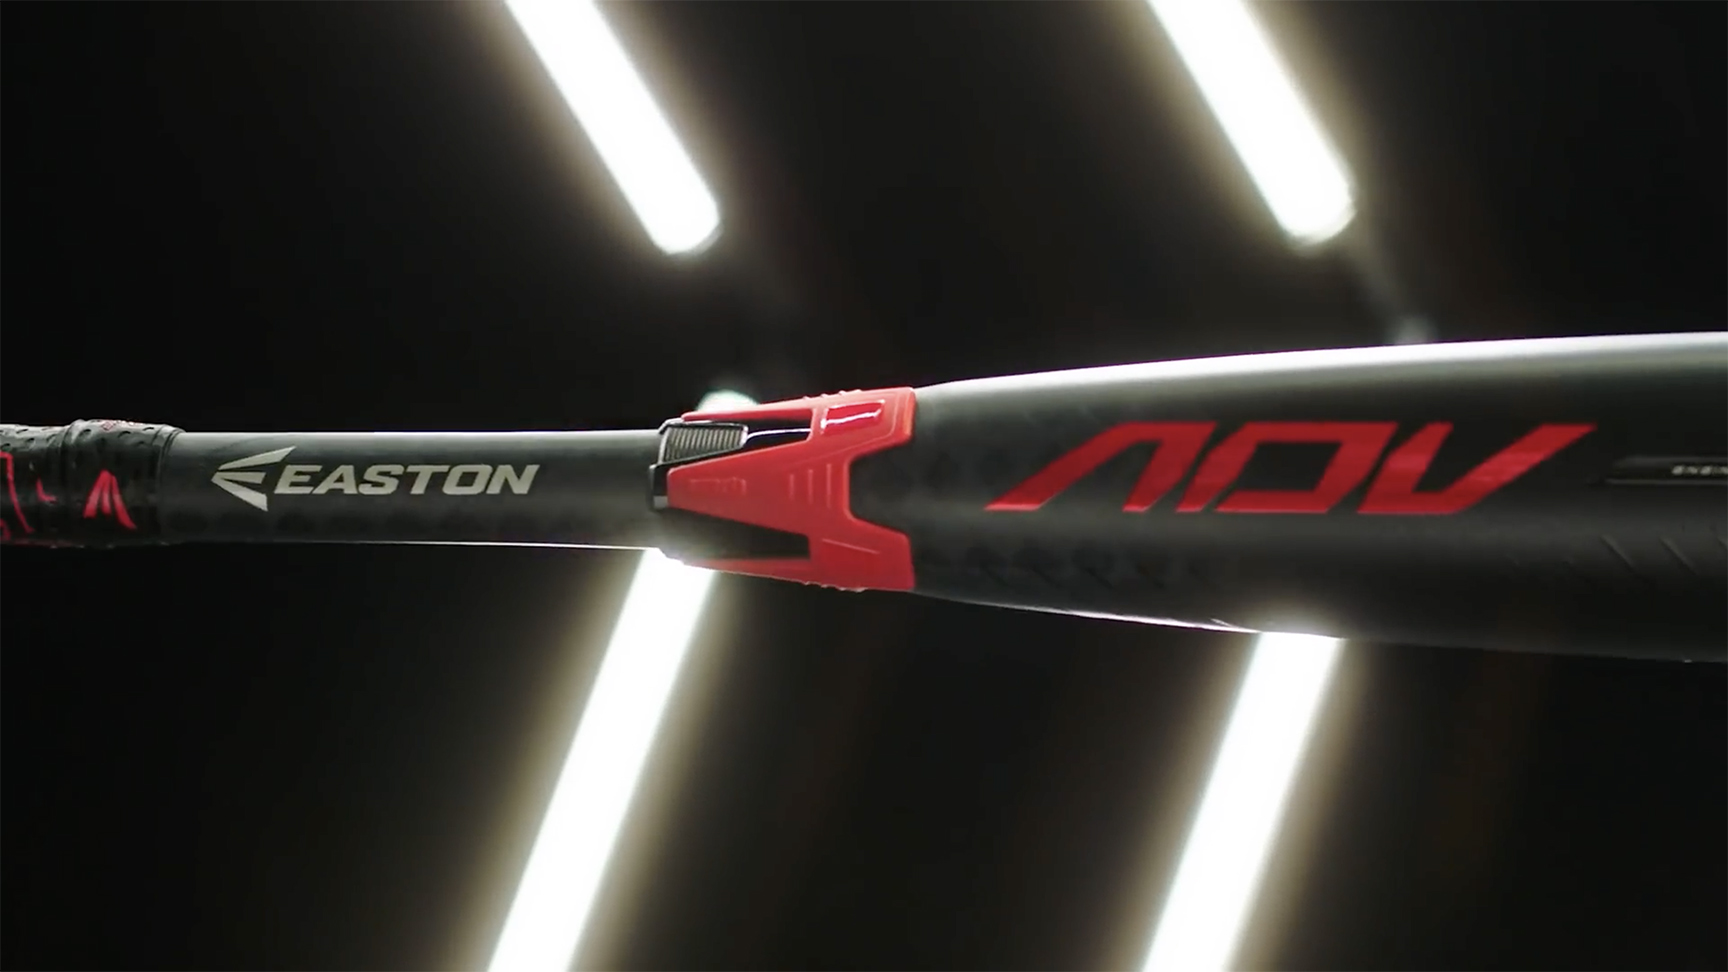 Easton Project 3 Lineup